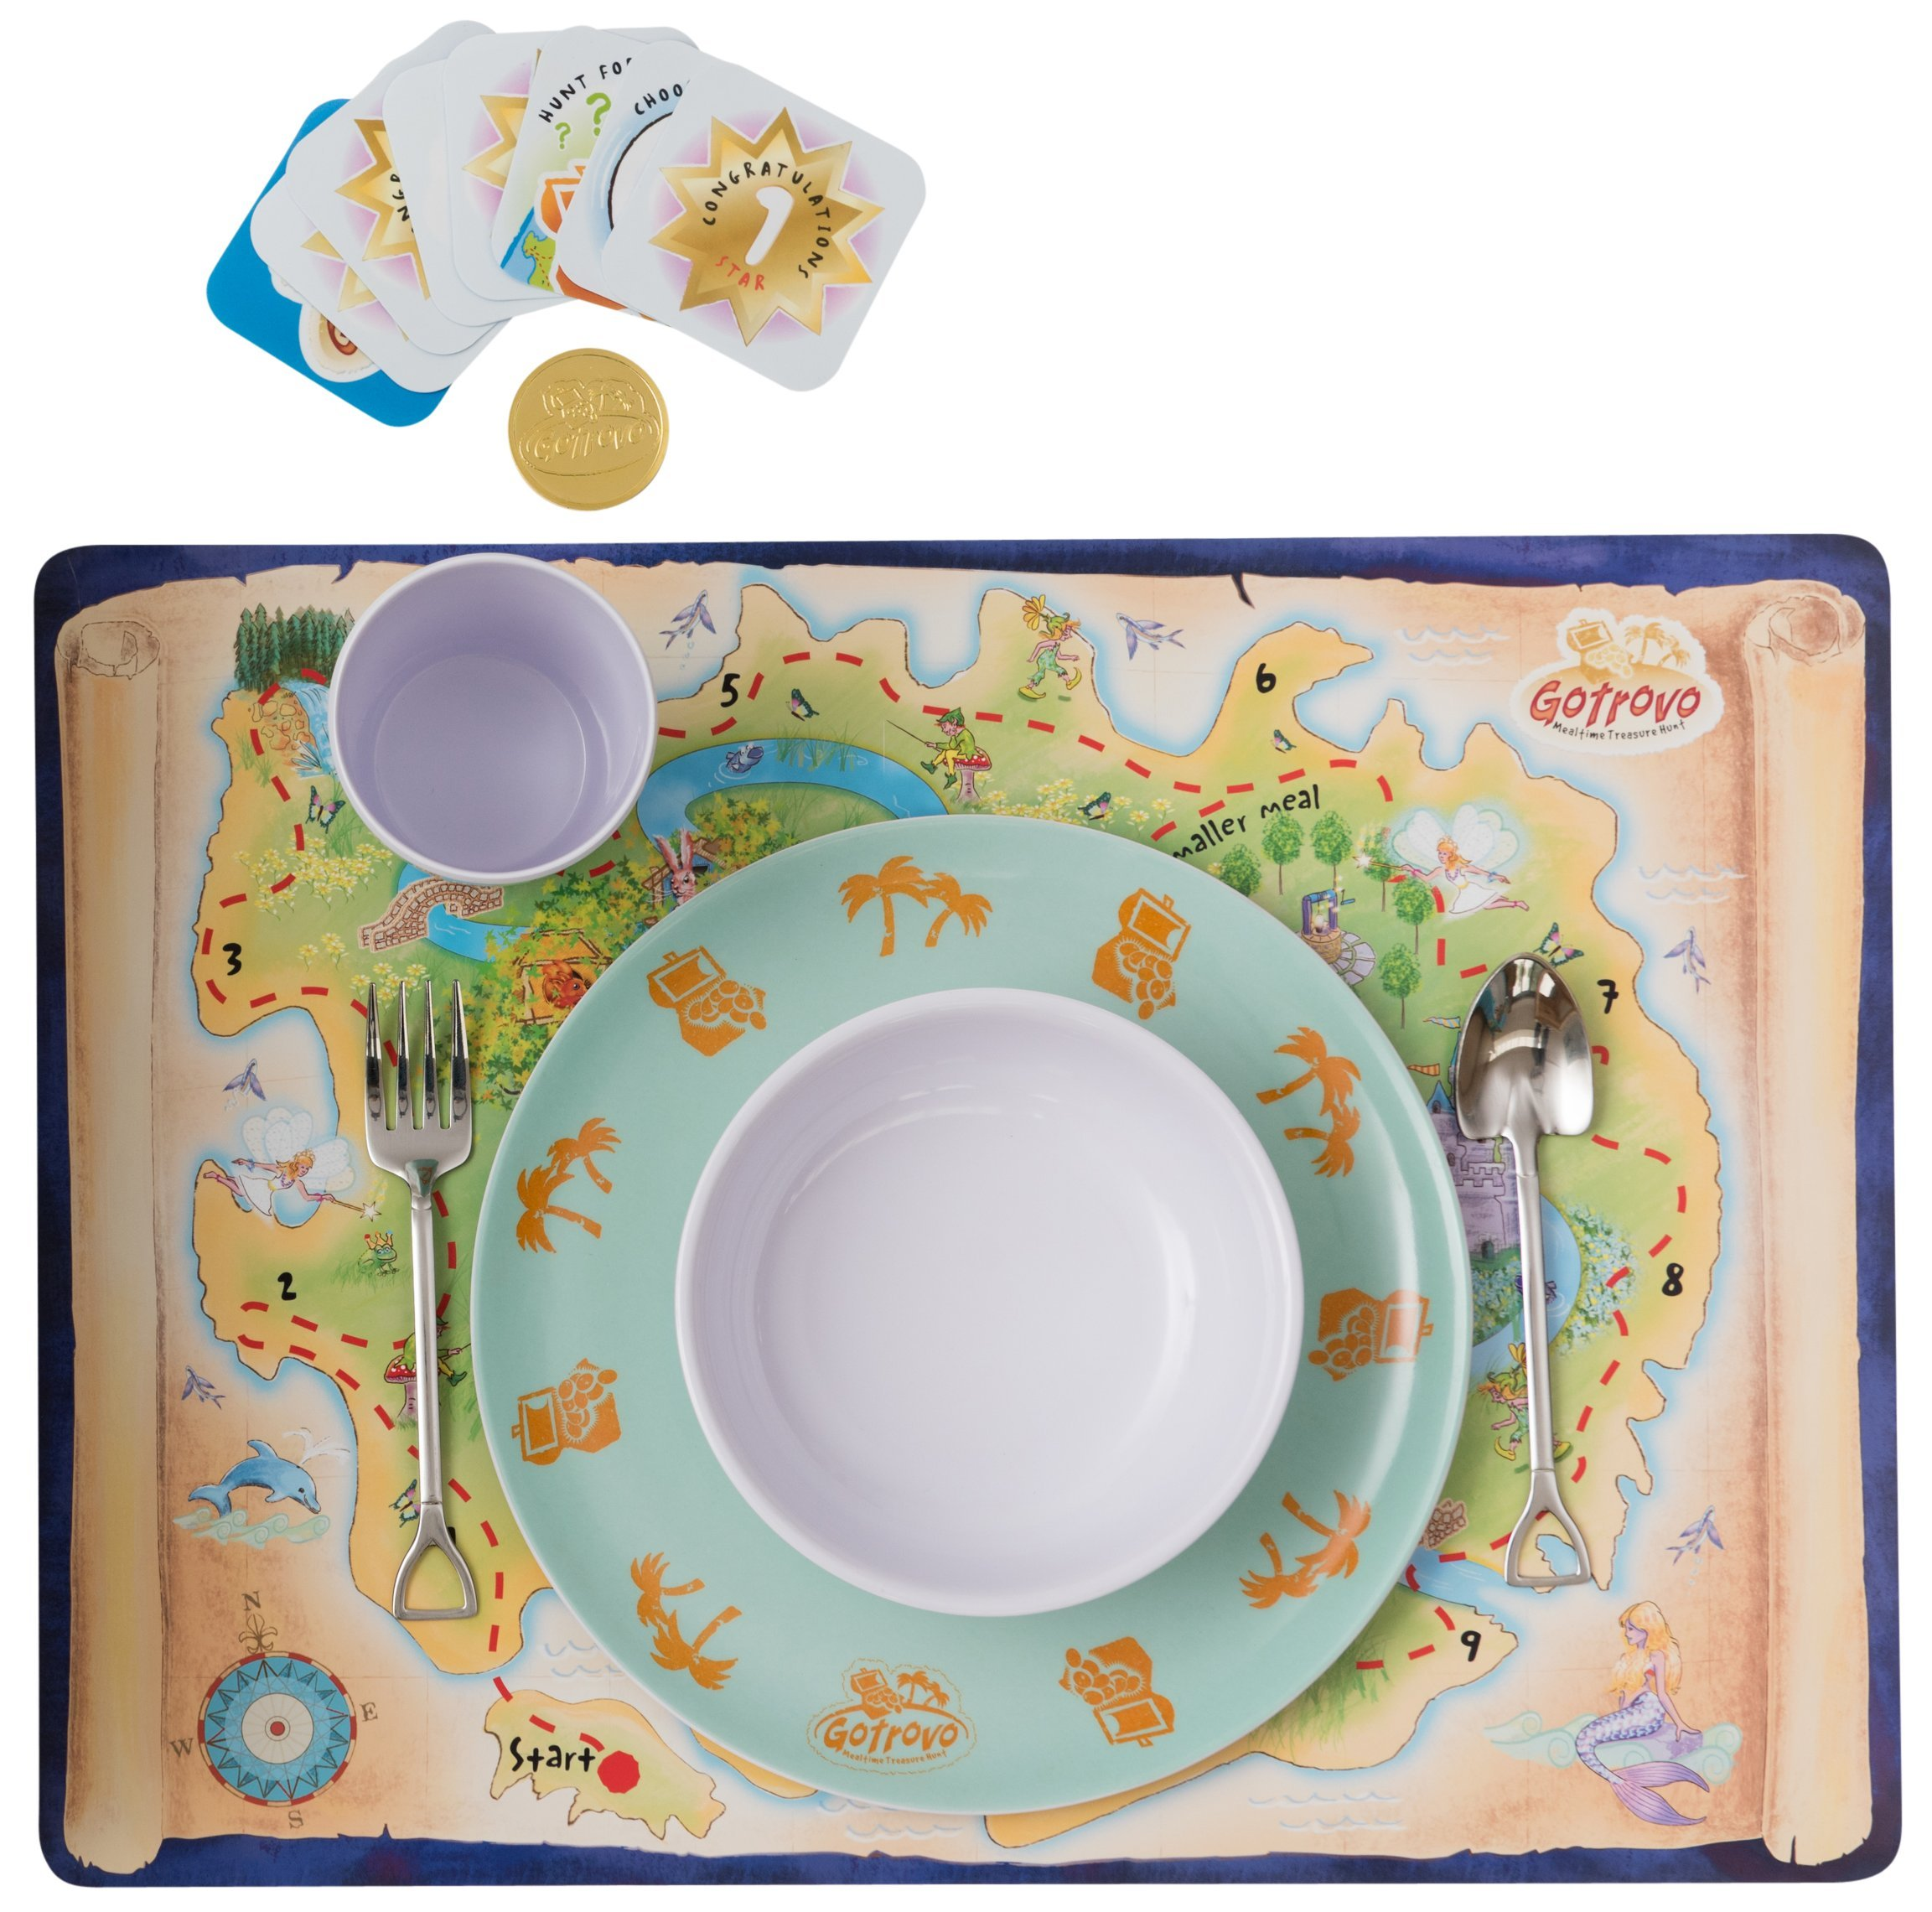 Mealtime Adventures Educational Dinner Game/Table Game for Kids. Includes Gotrovo Game Board, Reward Game Cards, Fun Novelty Cutlery and Dinner Set all in one